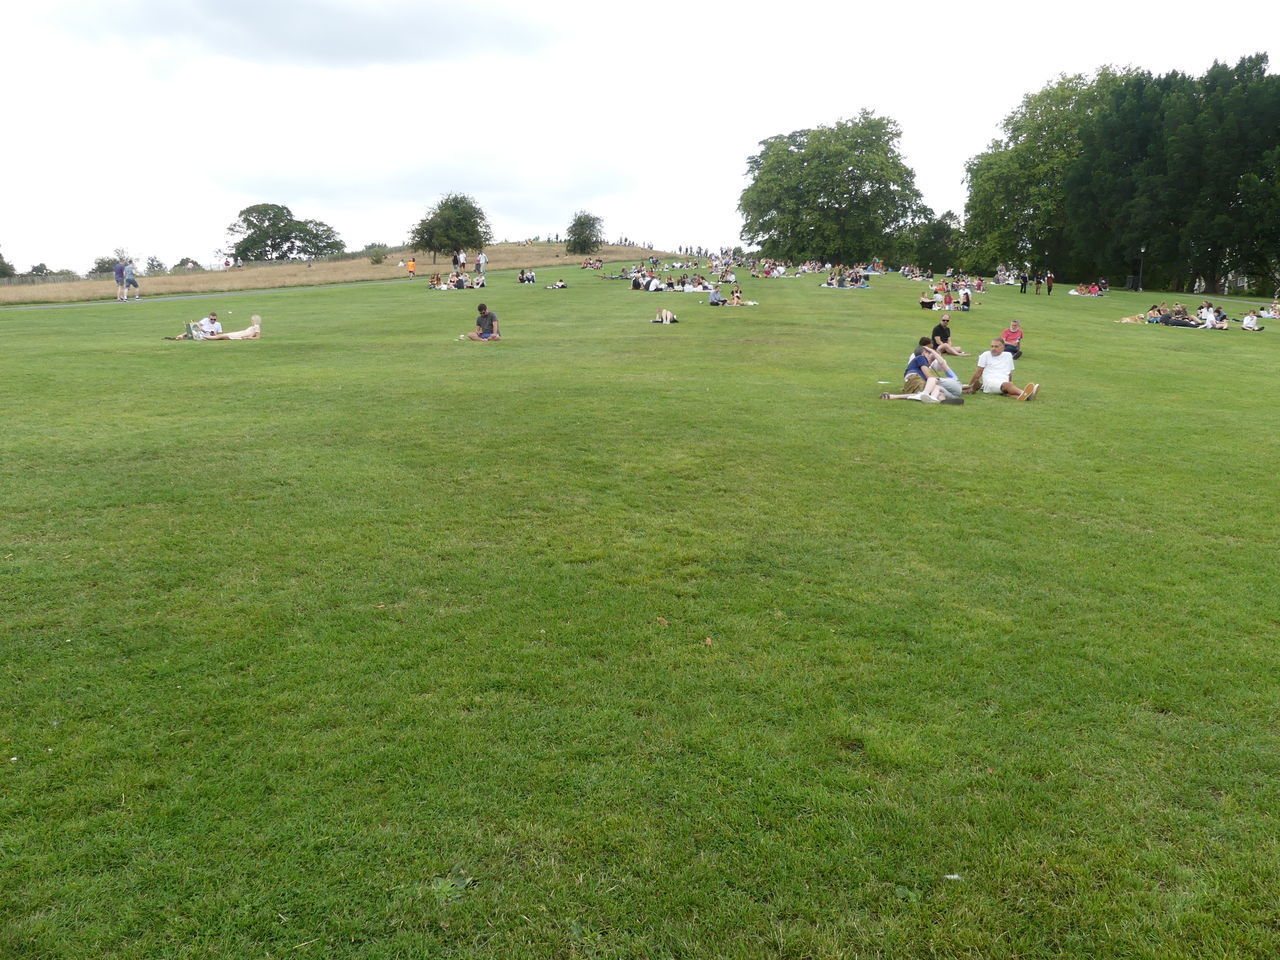 grass, plant, green color, tree, field, land, group of people, real people, people, nature, sport, men, day, leisure activity, sky, park, crowd, landscape, playing, outdoors